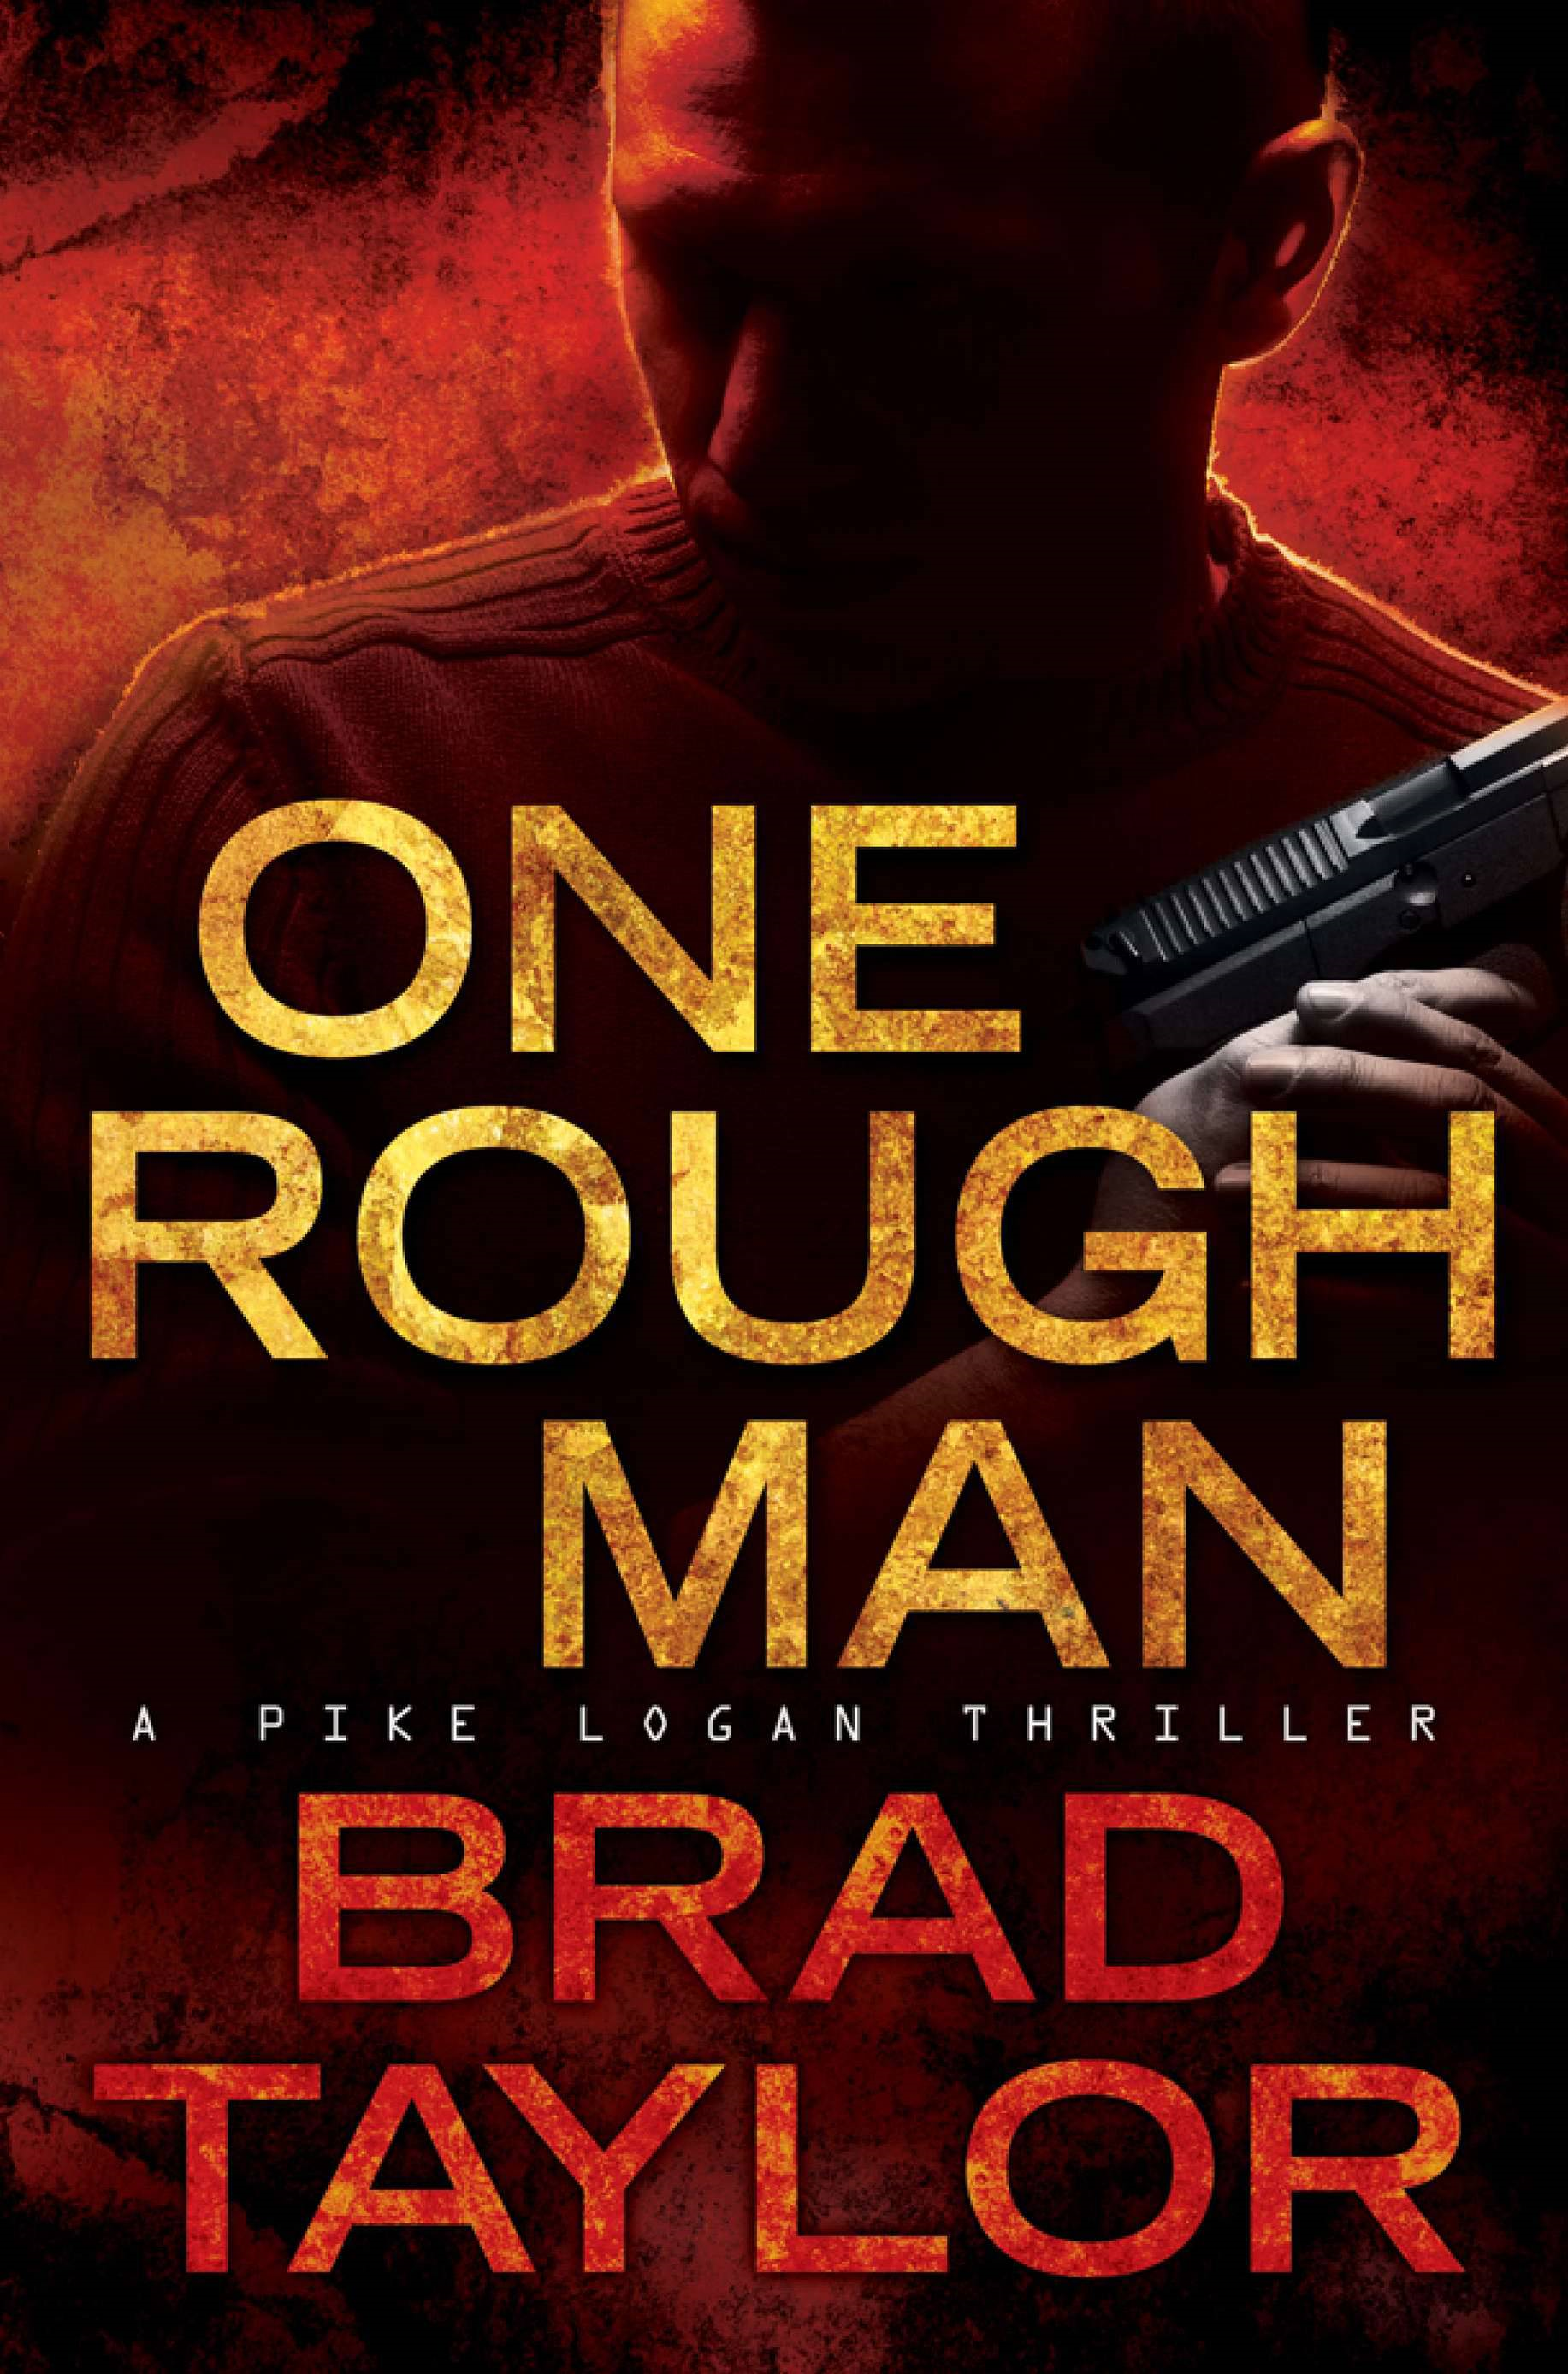 One Rough Man: A Pike Logan Thriller By: Brad Taylor